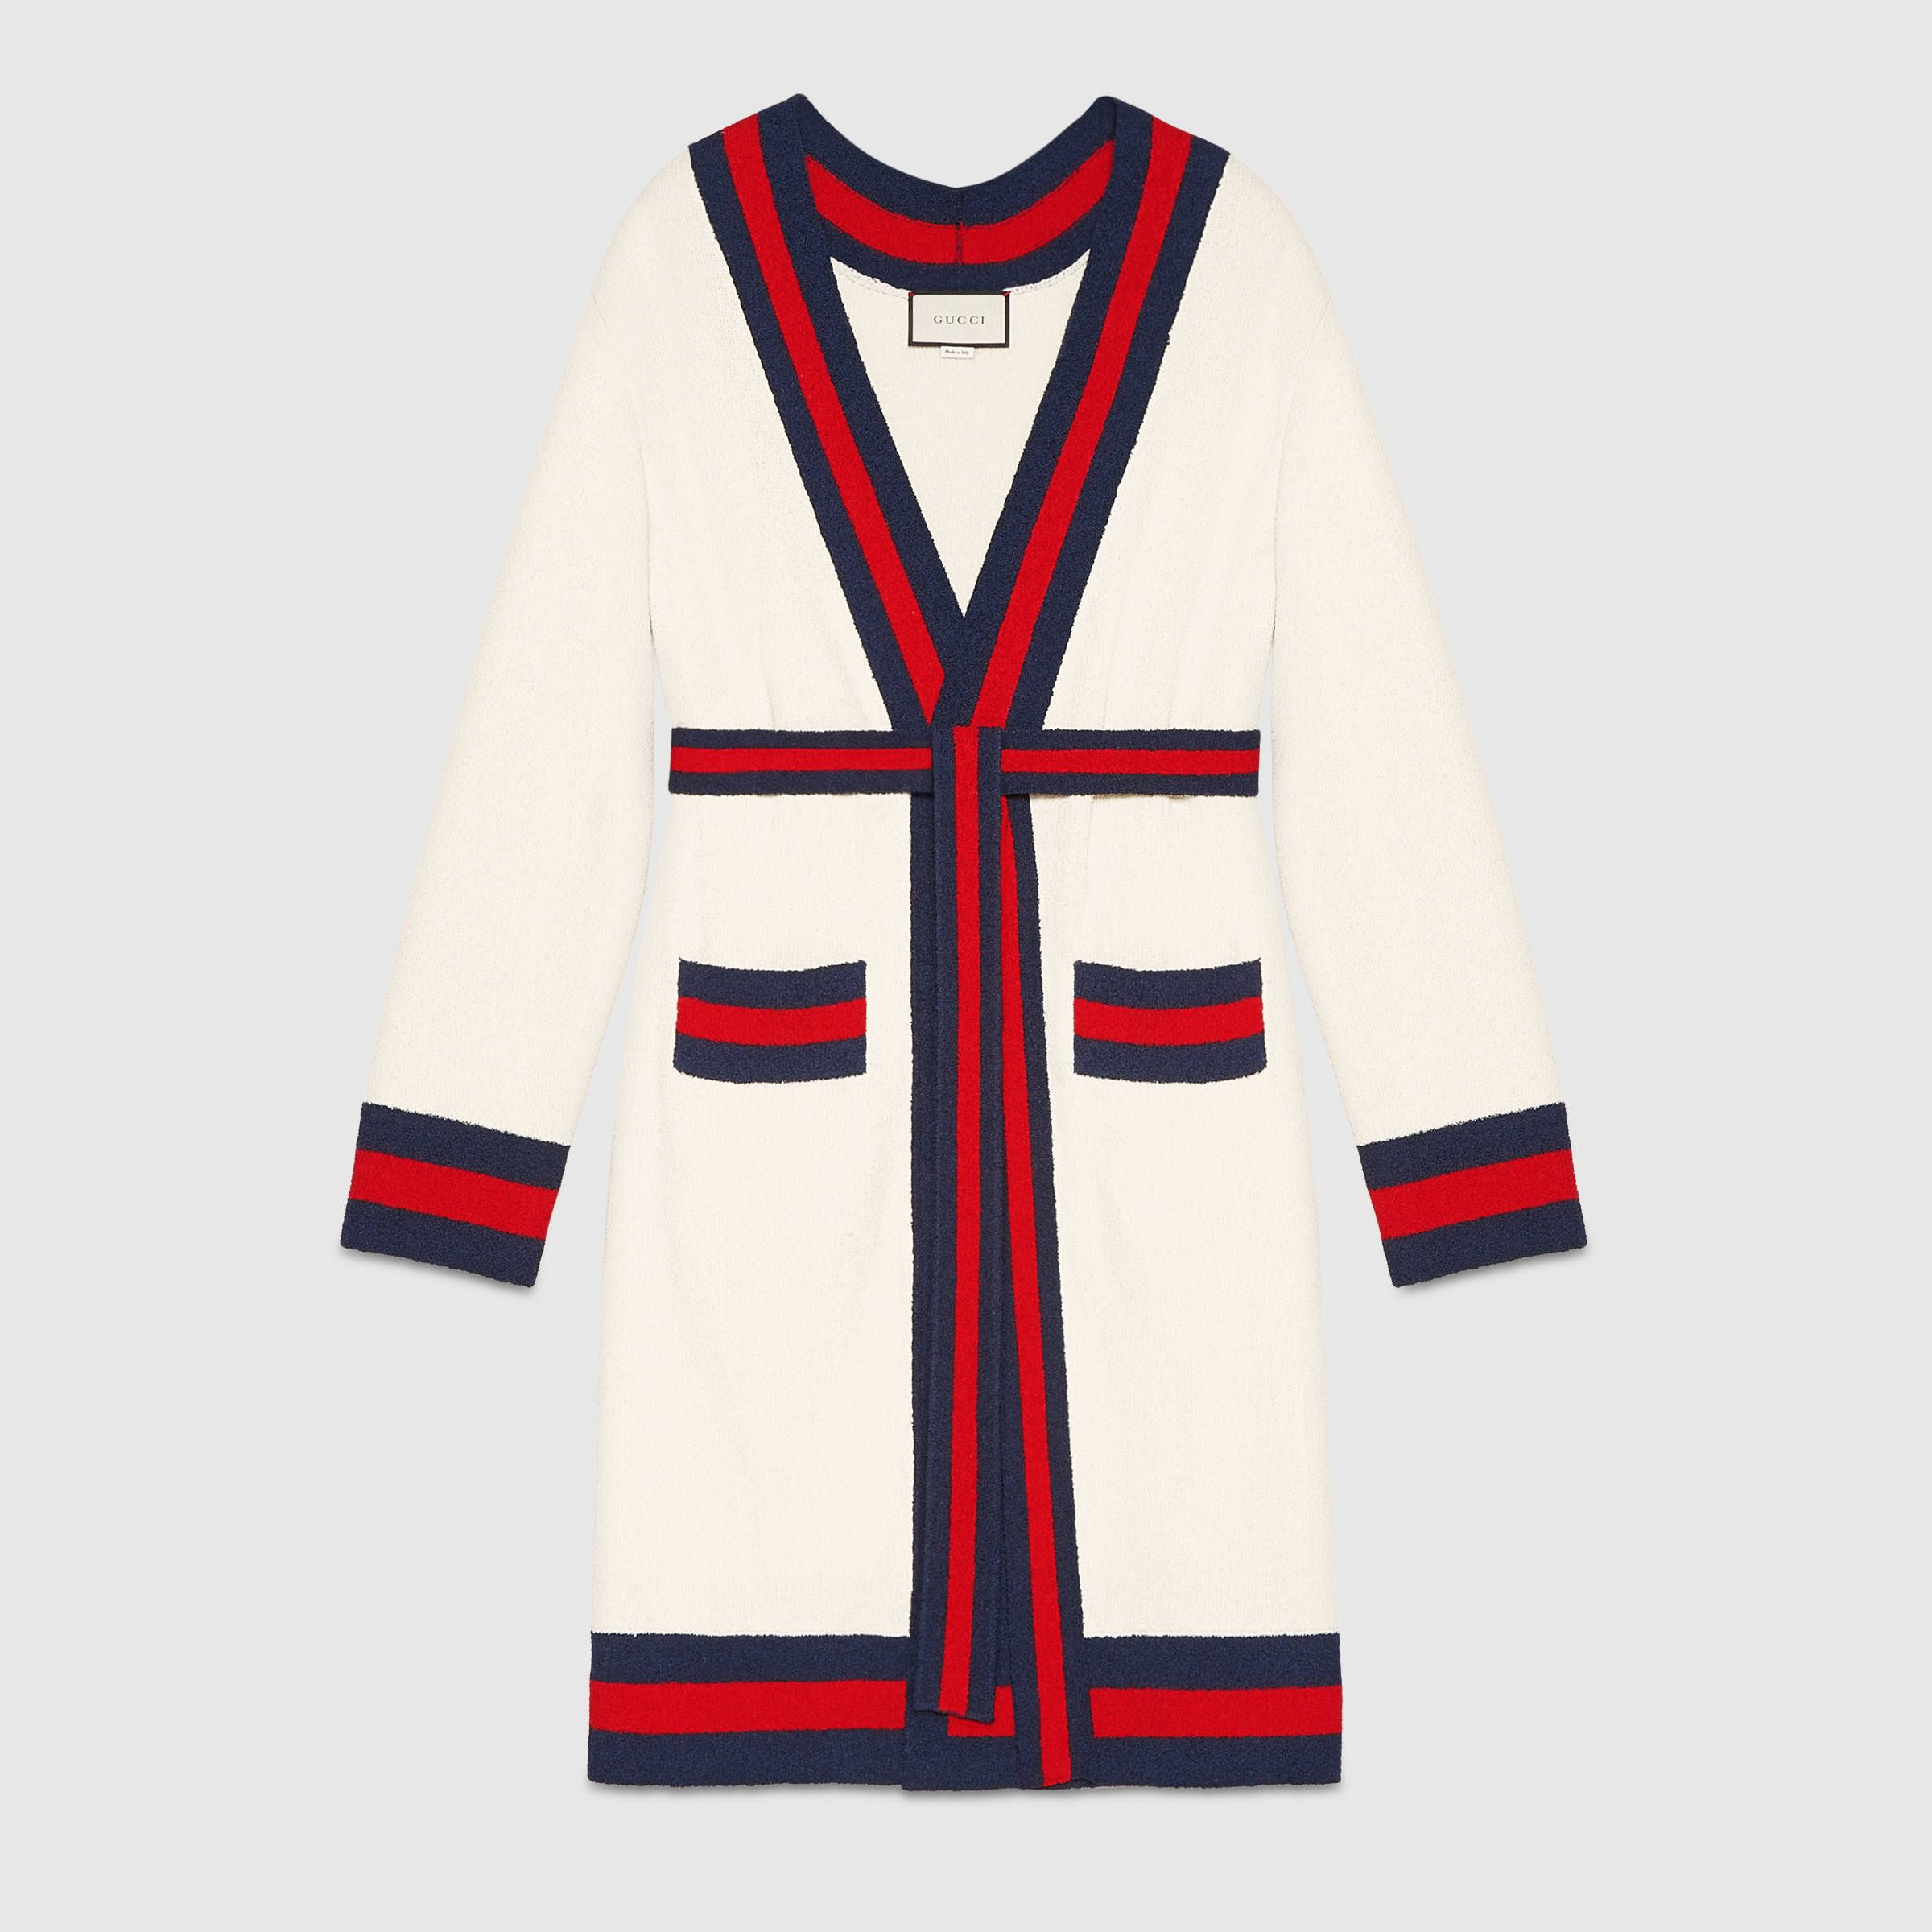 e534042623fe3 Embroidered oversize cardigan - Gucci Women s Sweaters   Cardigans  457437X7A059240